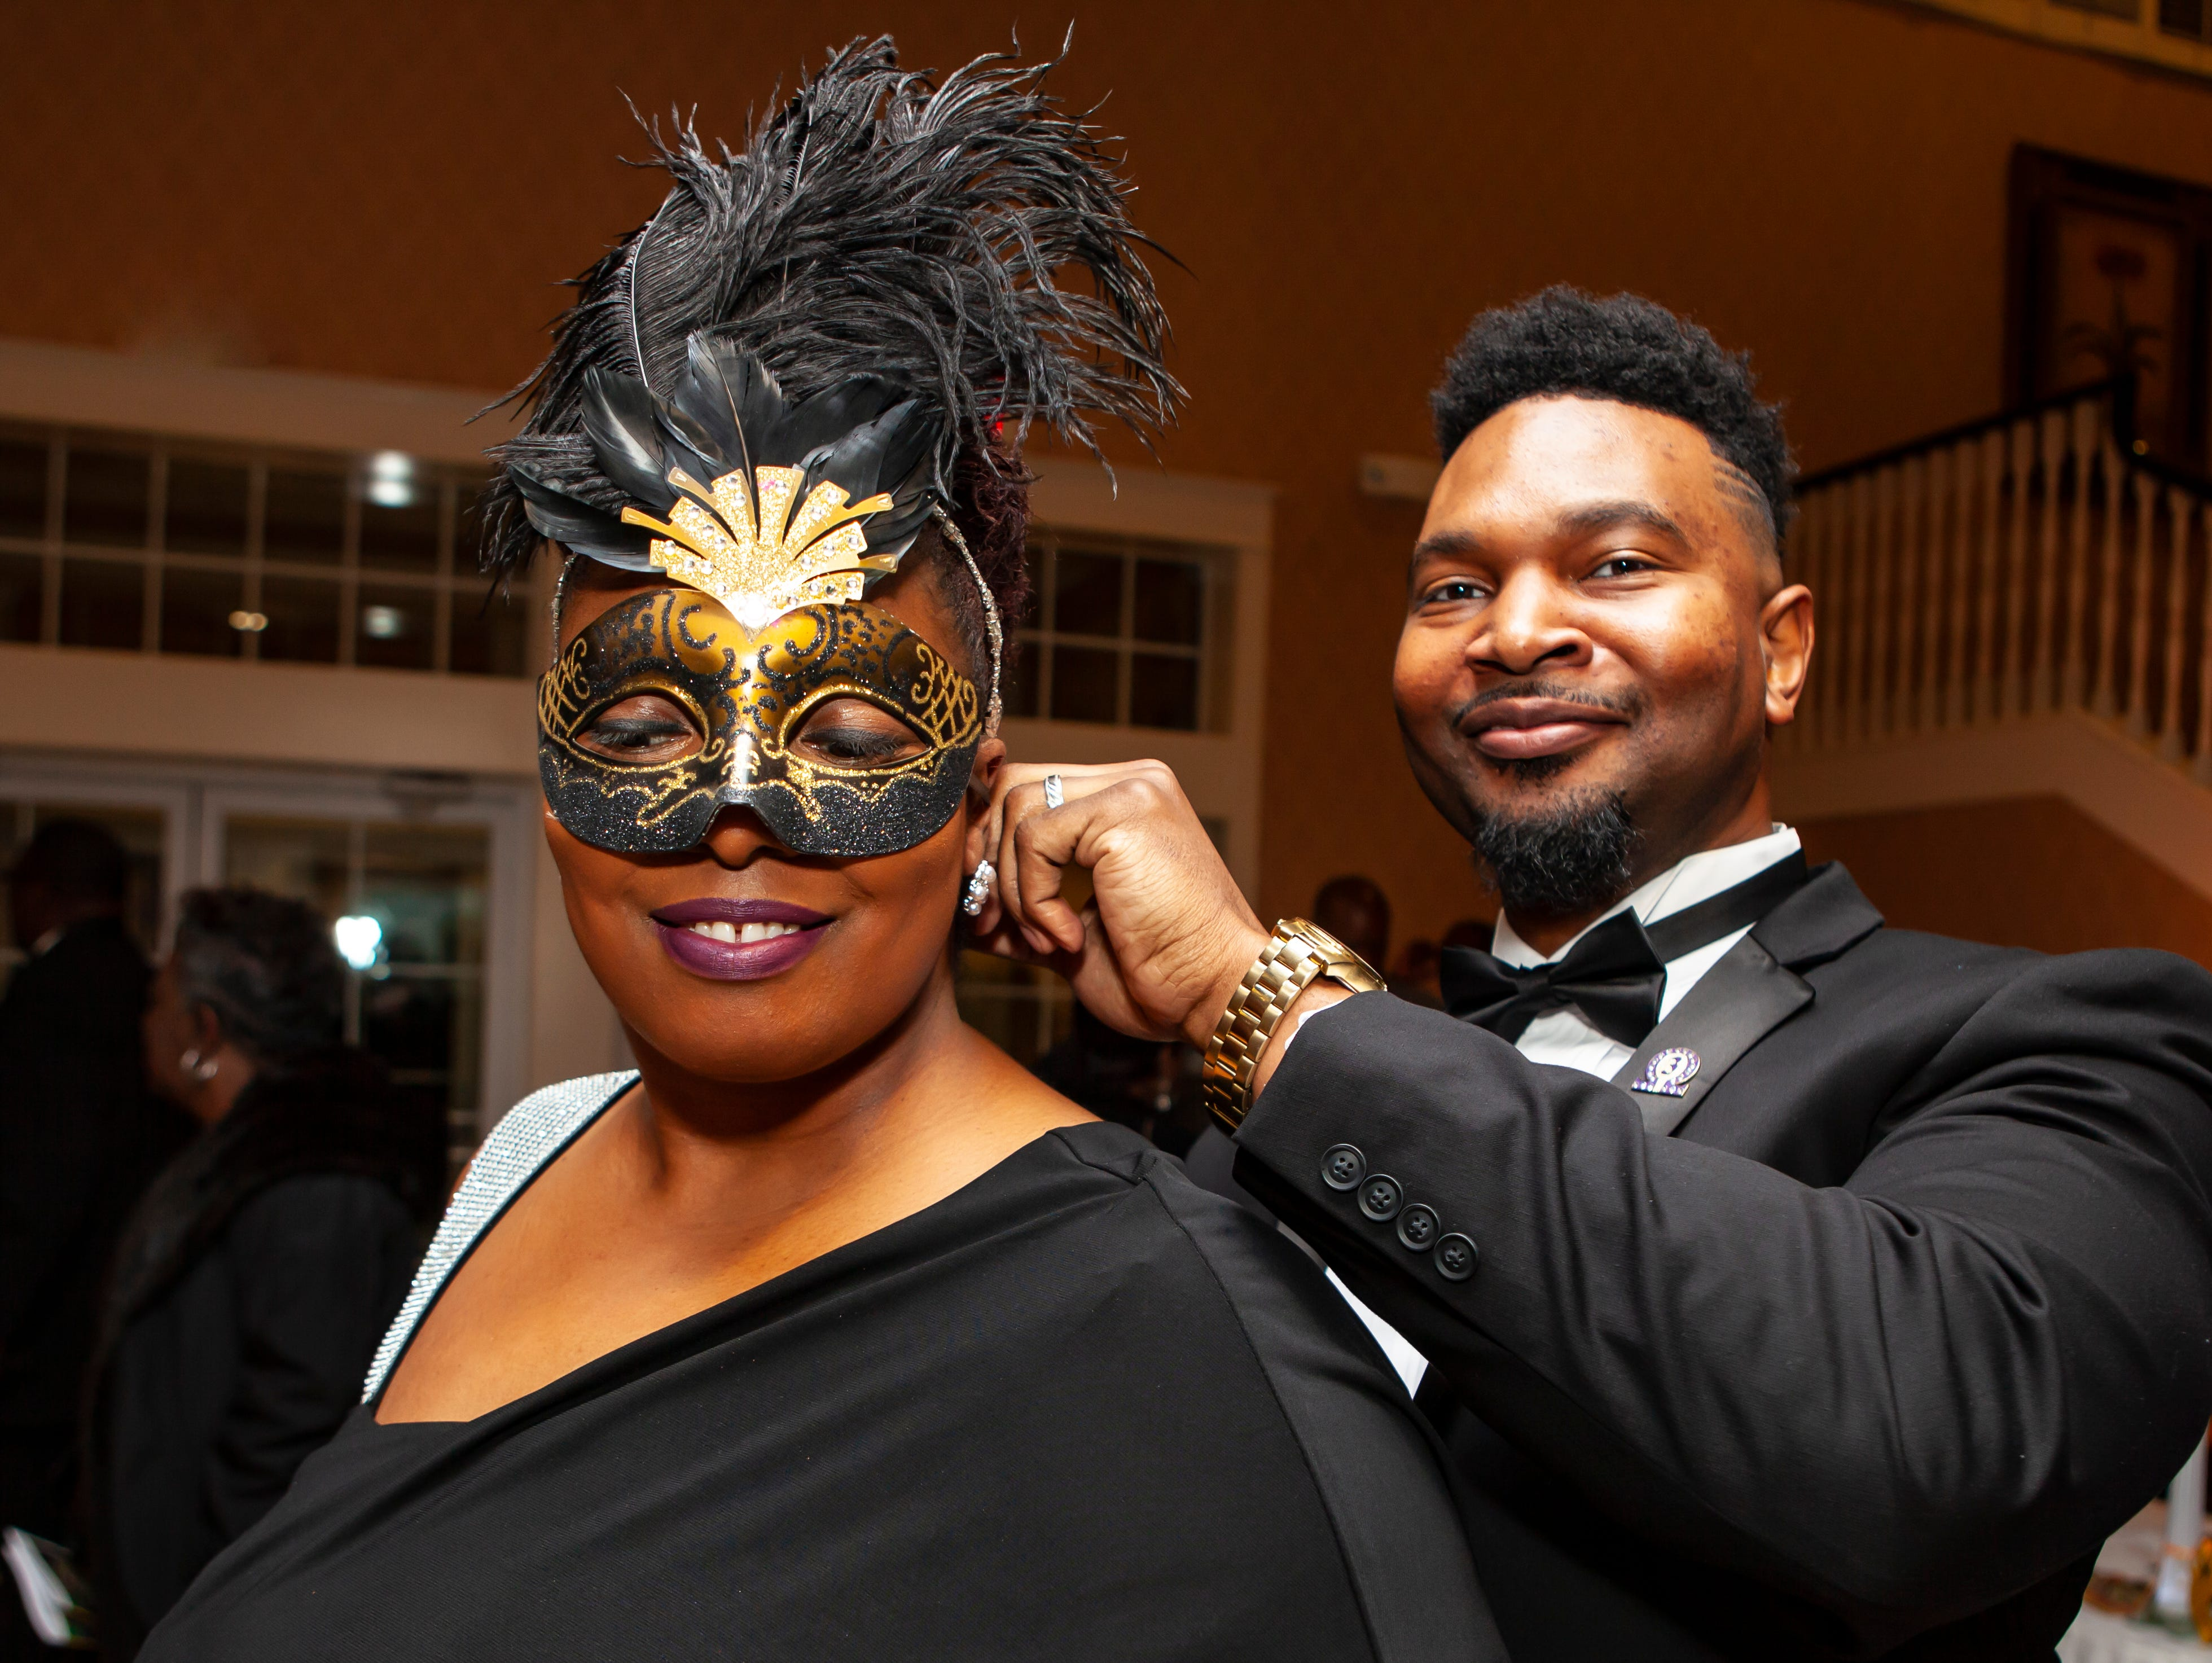 Stacey and Cornelius Yates at the Omega Psi Phi Mardi Gras Party, held Saturday, Feb. 9 at Stones River Country Club in Murfreesboro.